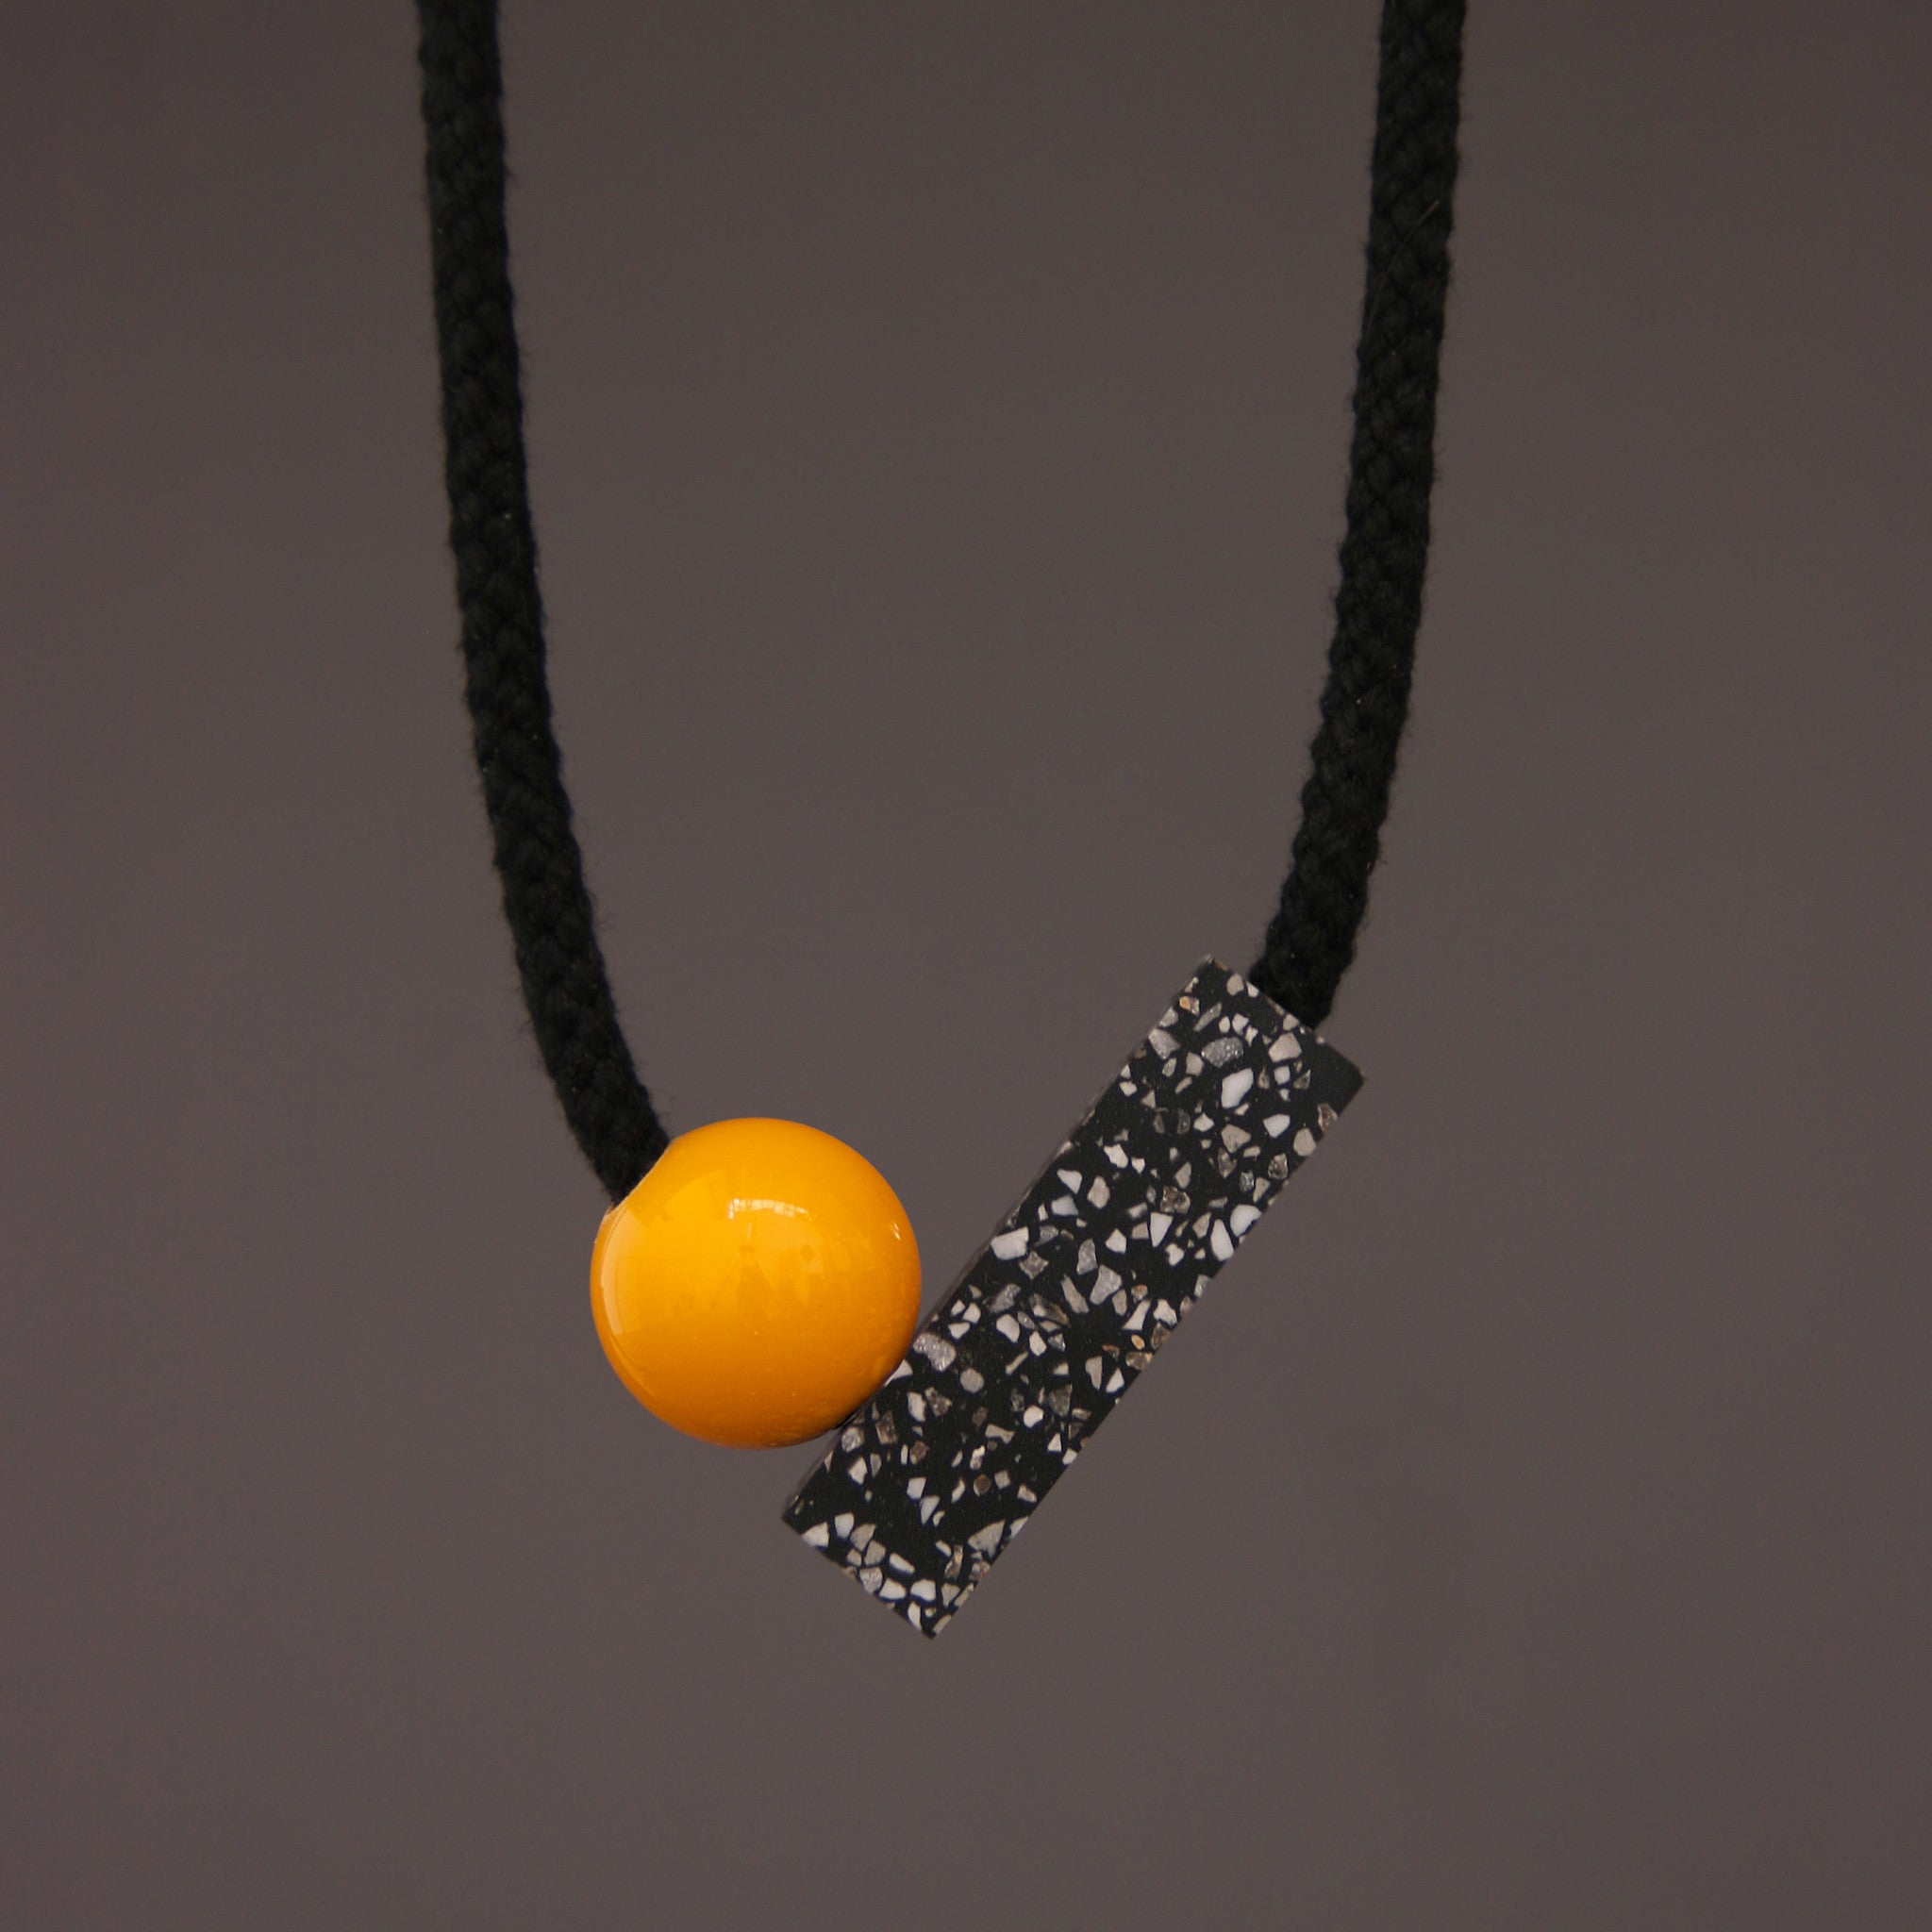 The Ad necklace is a minimalist and stylish design. It is composed of 2 main parts - A section of black corian with fine speckles of grey and white (60mm x 18mm) and a coloured ball (25mm).